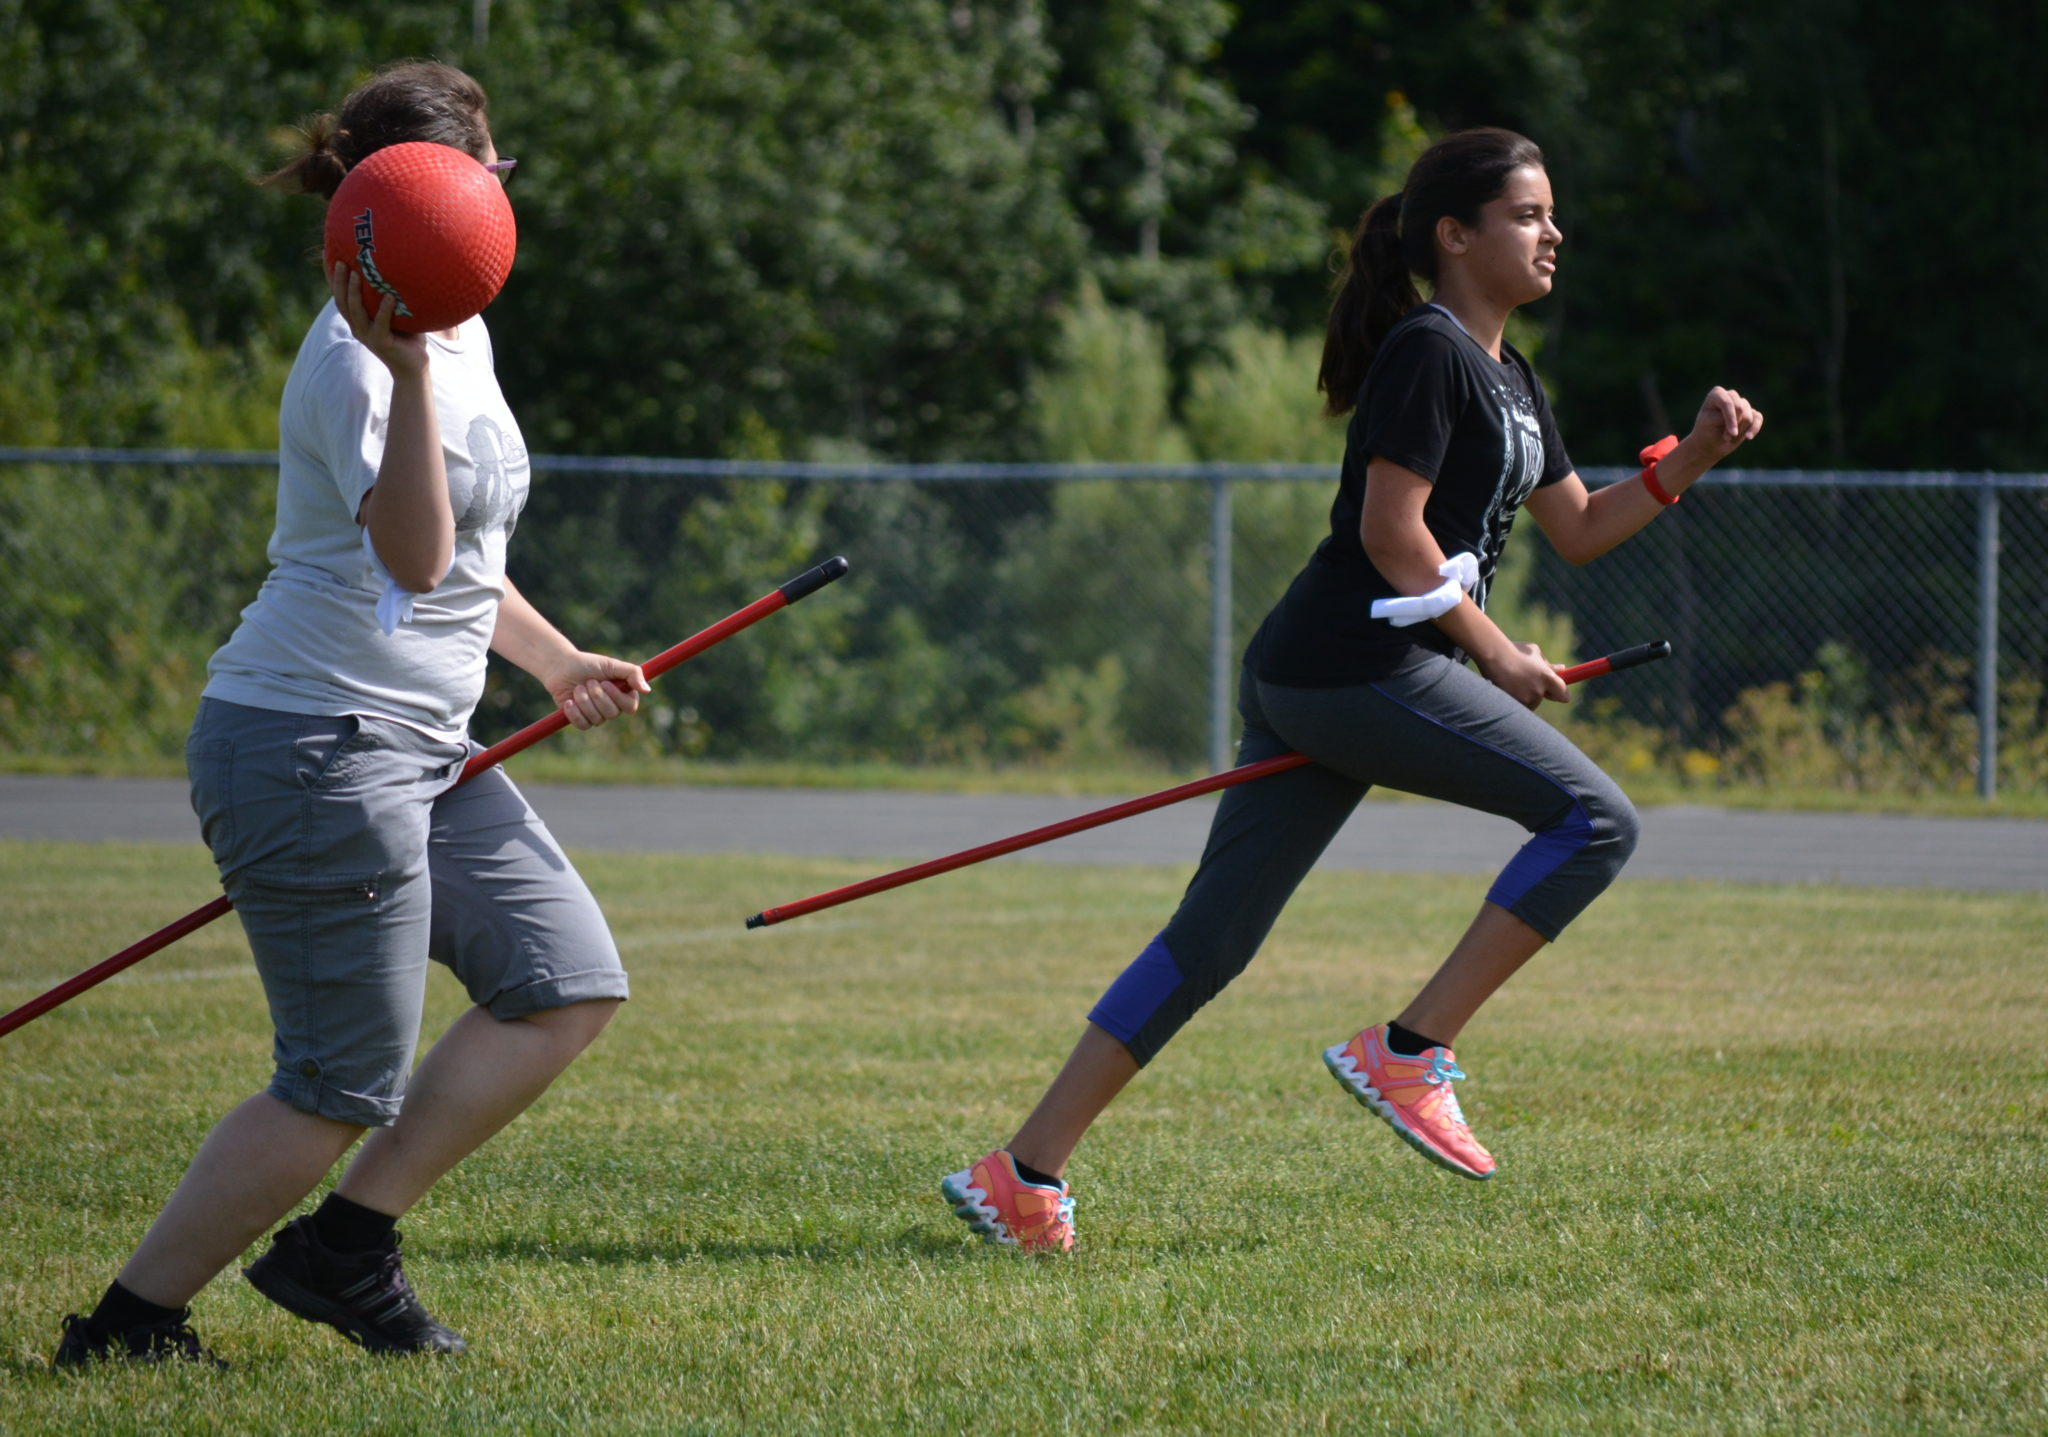 A game of Quidditch at Campbellton as a nod to the latest Harry Potter (video)